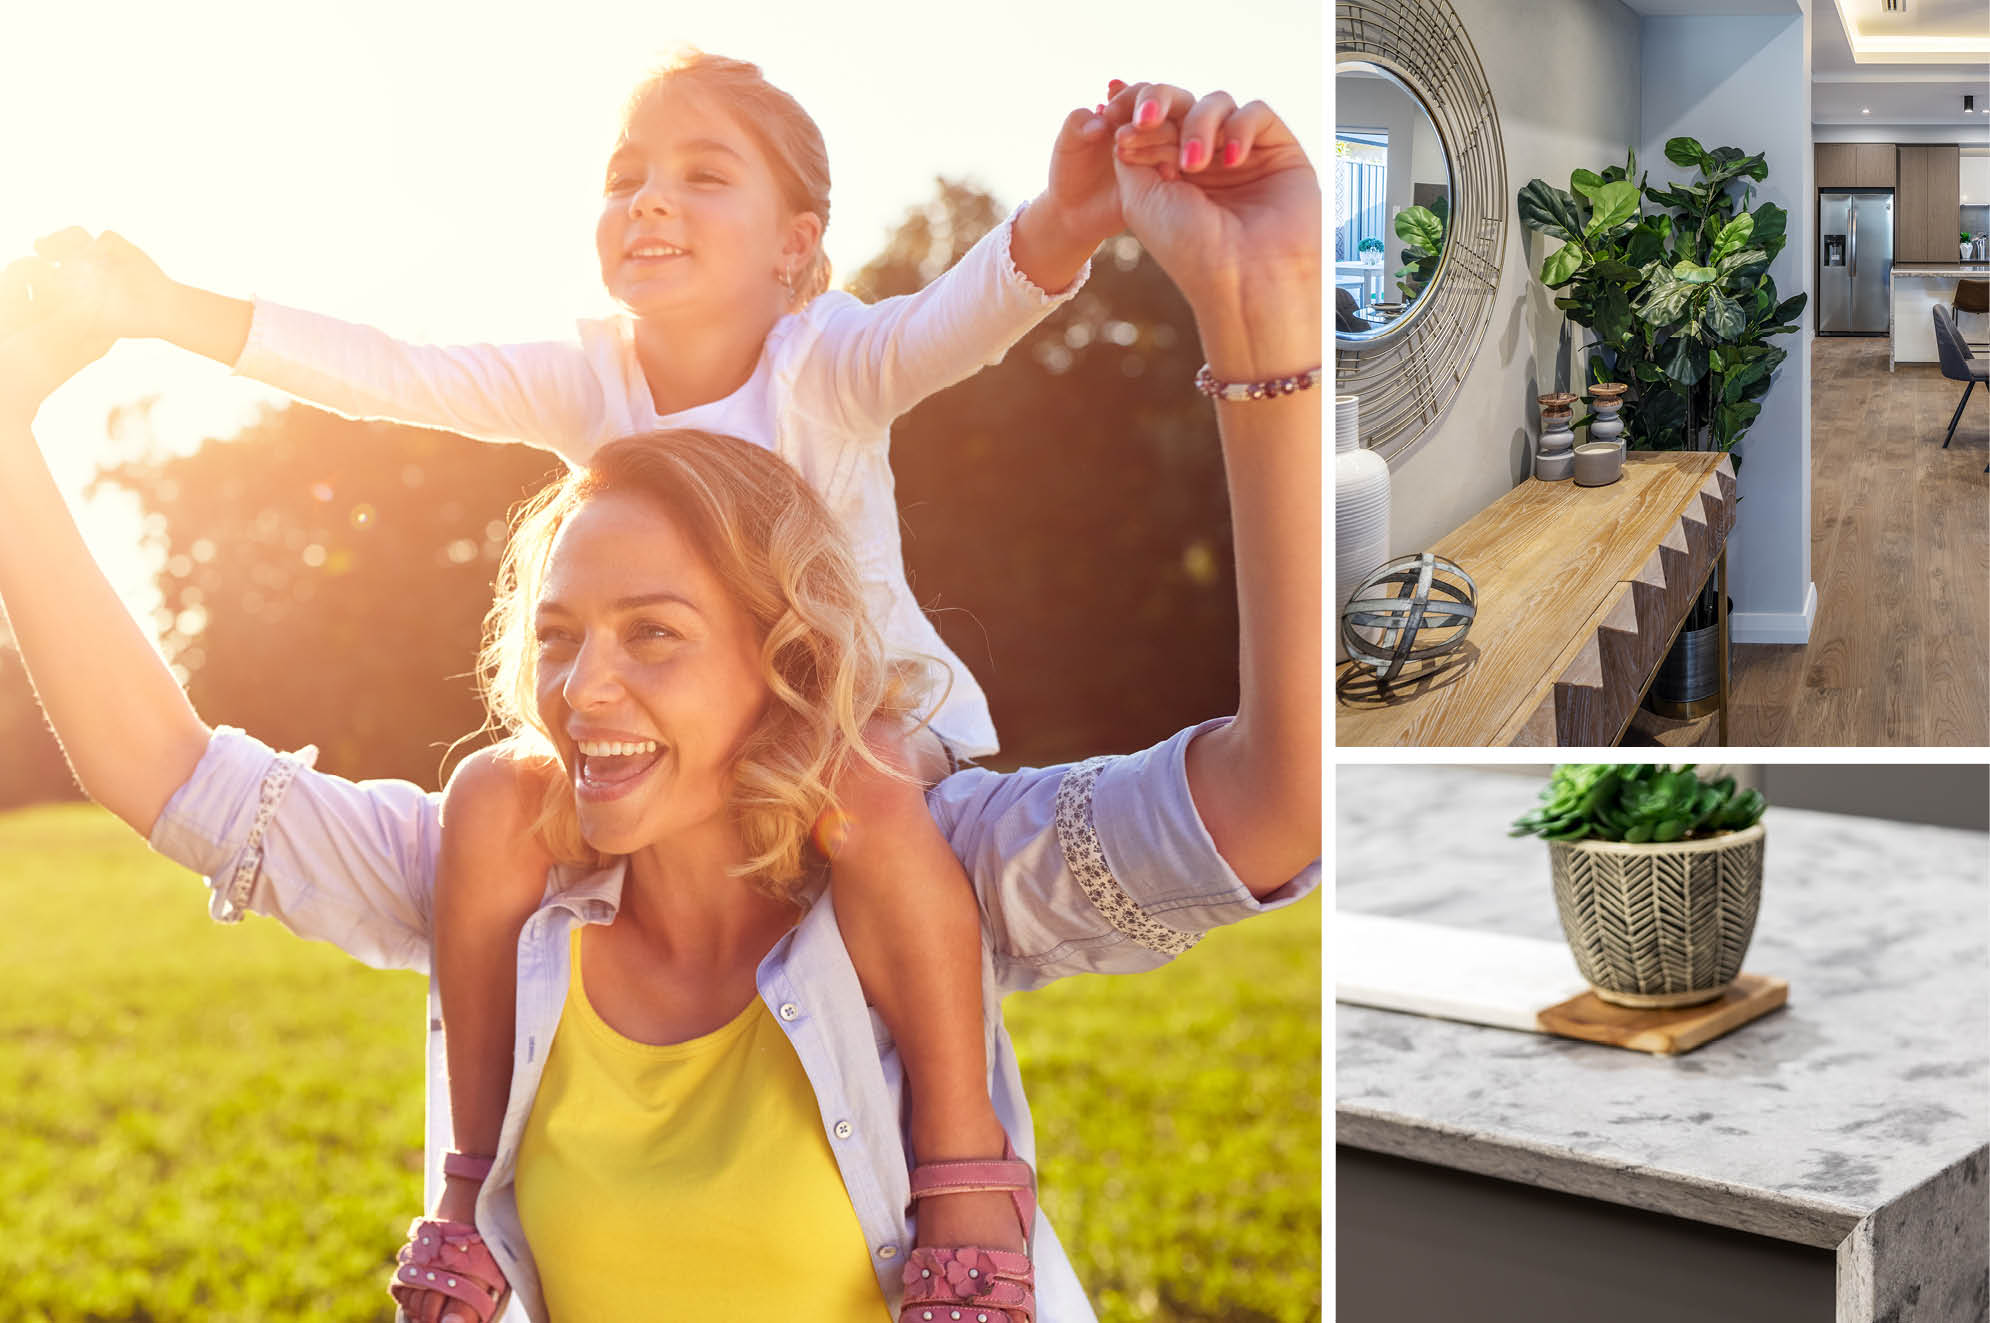 The Ultimate Living Series: home designs that add value for the future